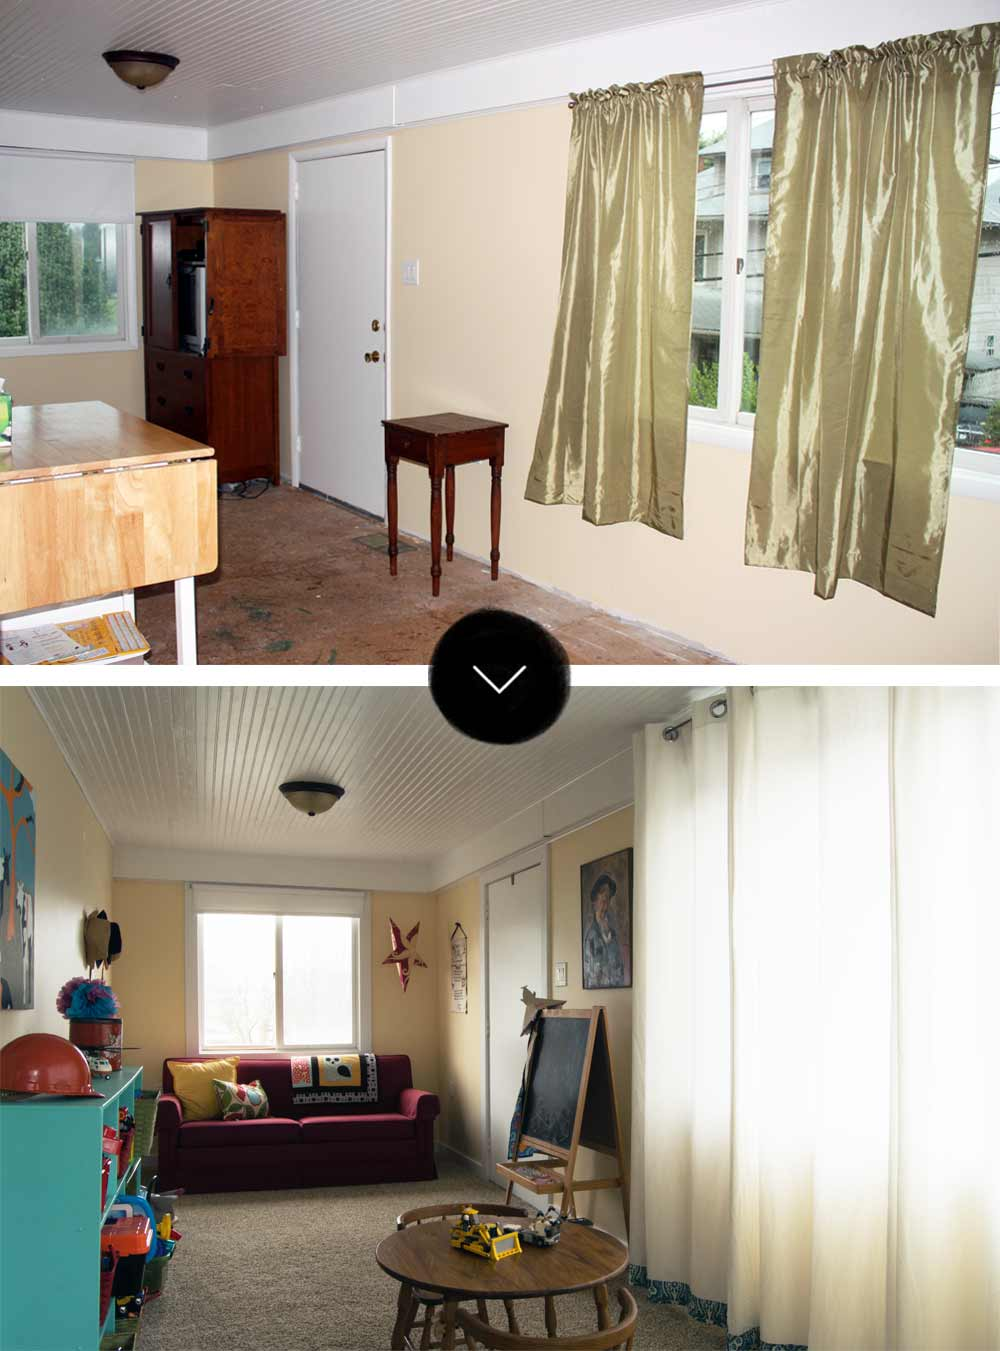 Before & After: A Fun Family Home for Mom and Son, on Design*Sponge